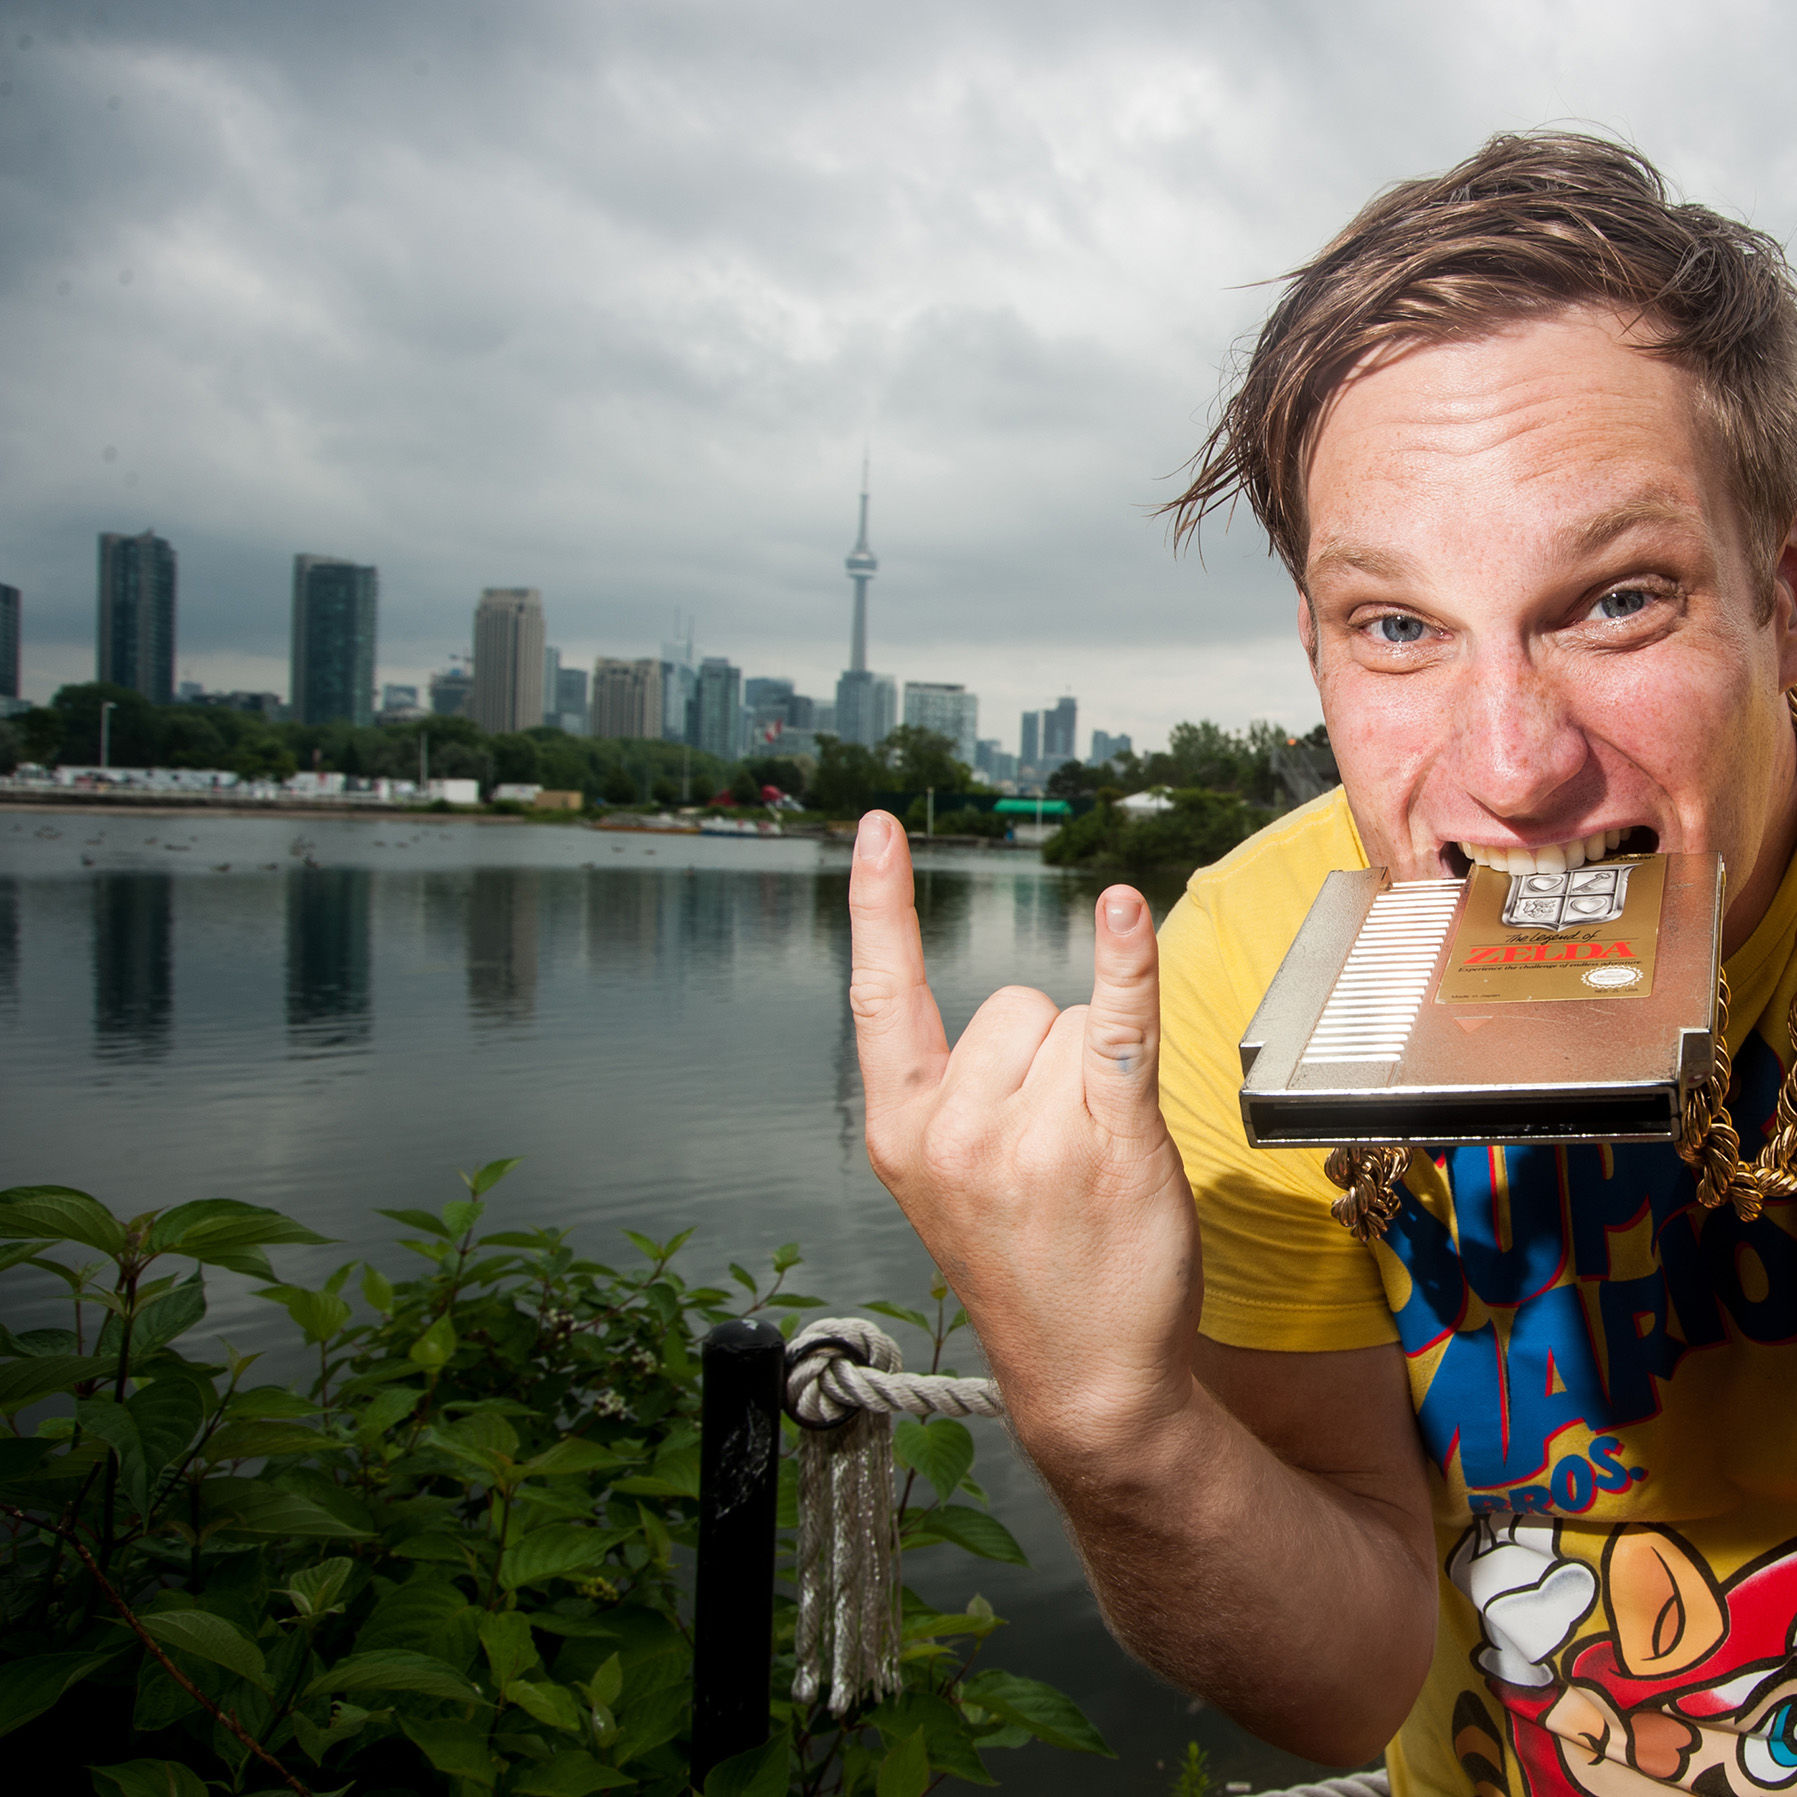 Mclars by nick karp robulg